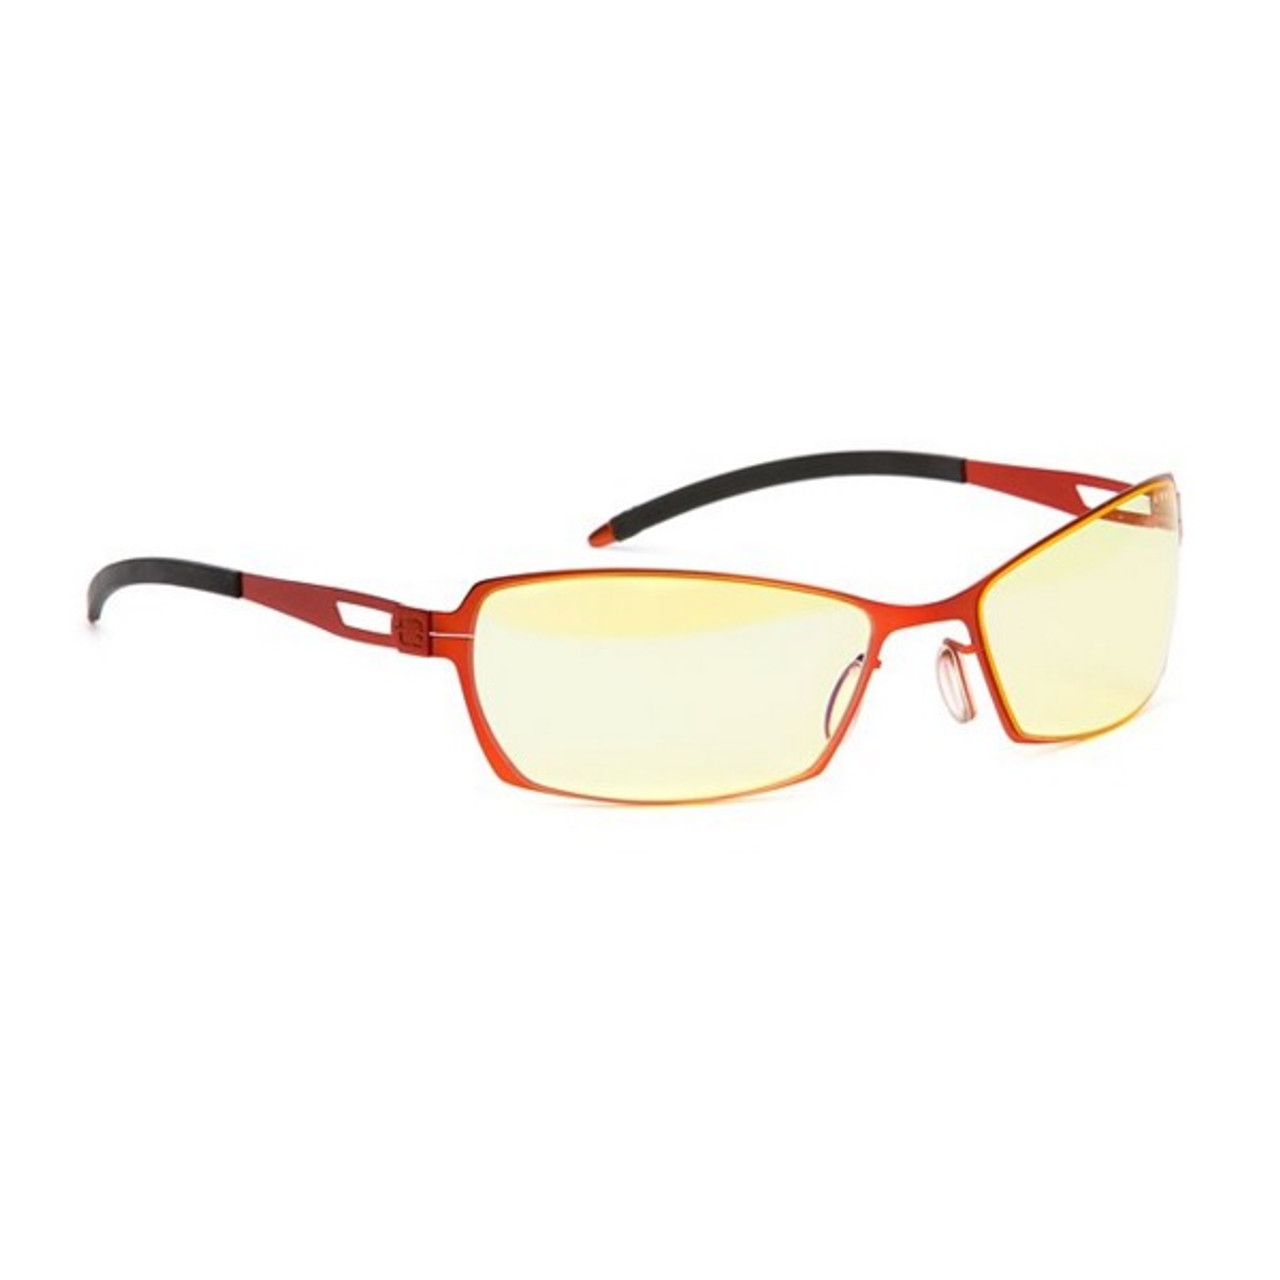 Product image for Gunnar Sync Amber Fire Indoor Digital Eyewear   CX Computer Superstore